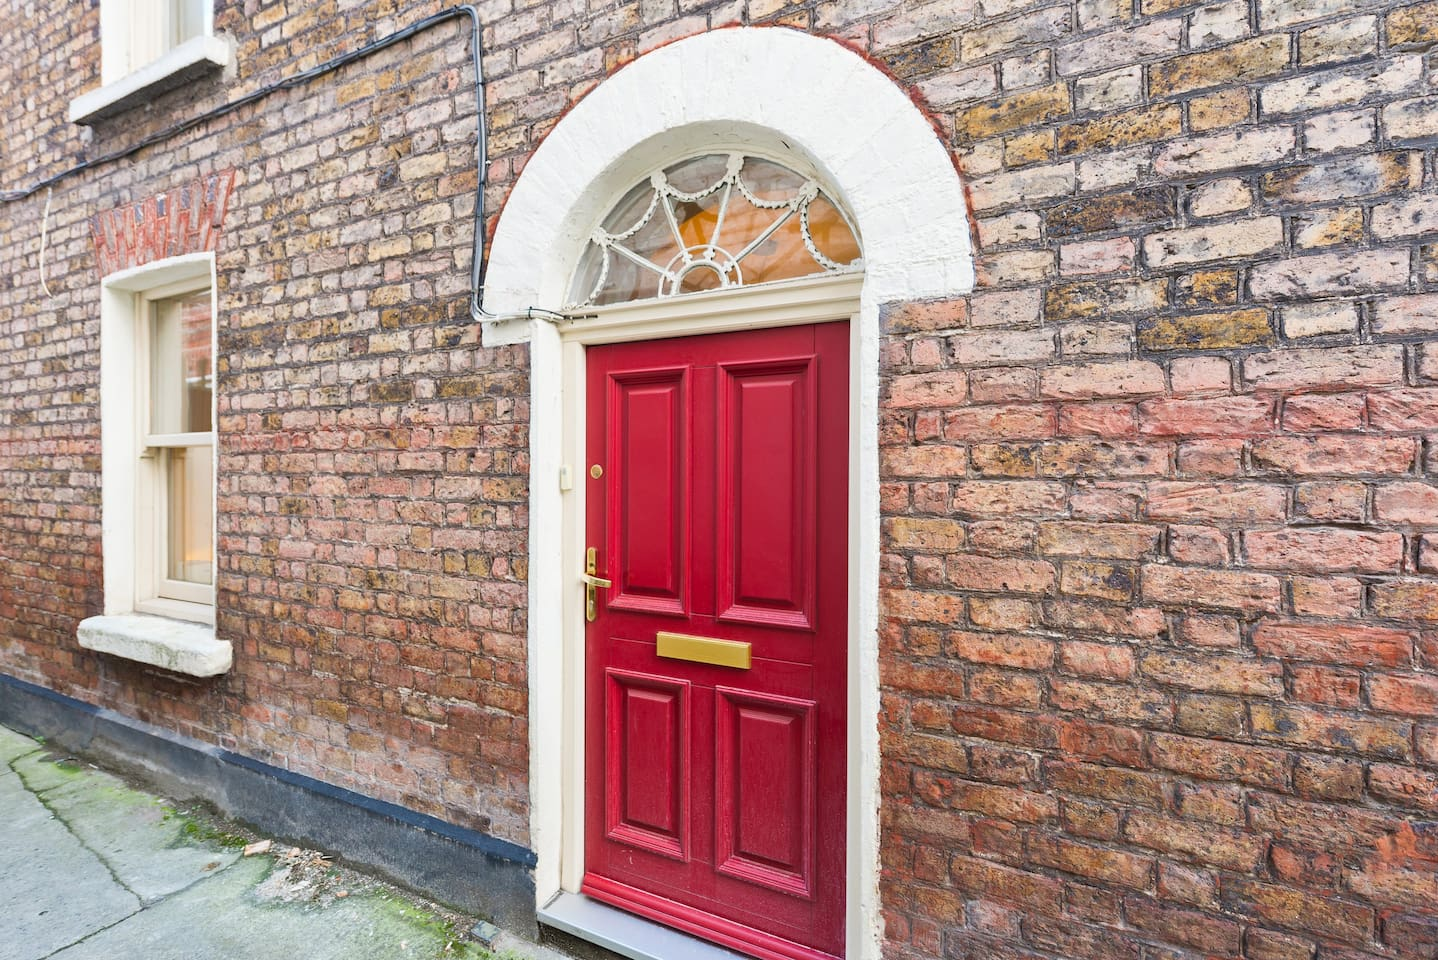 Our little period house with distinctive red doors sits hidden away on a Camden Street alleyway